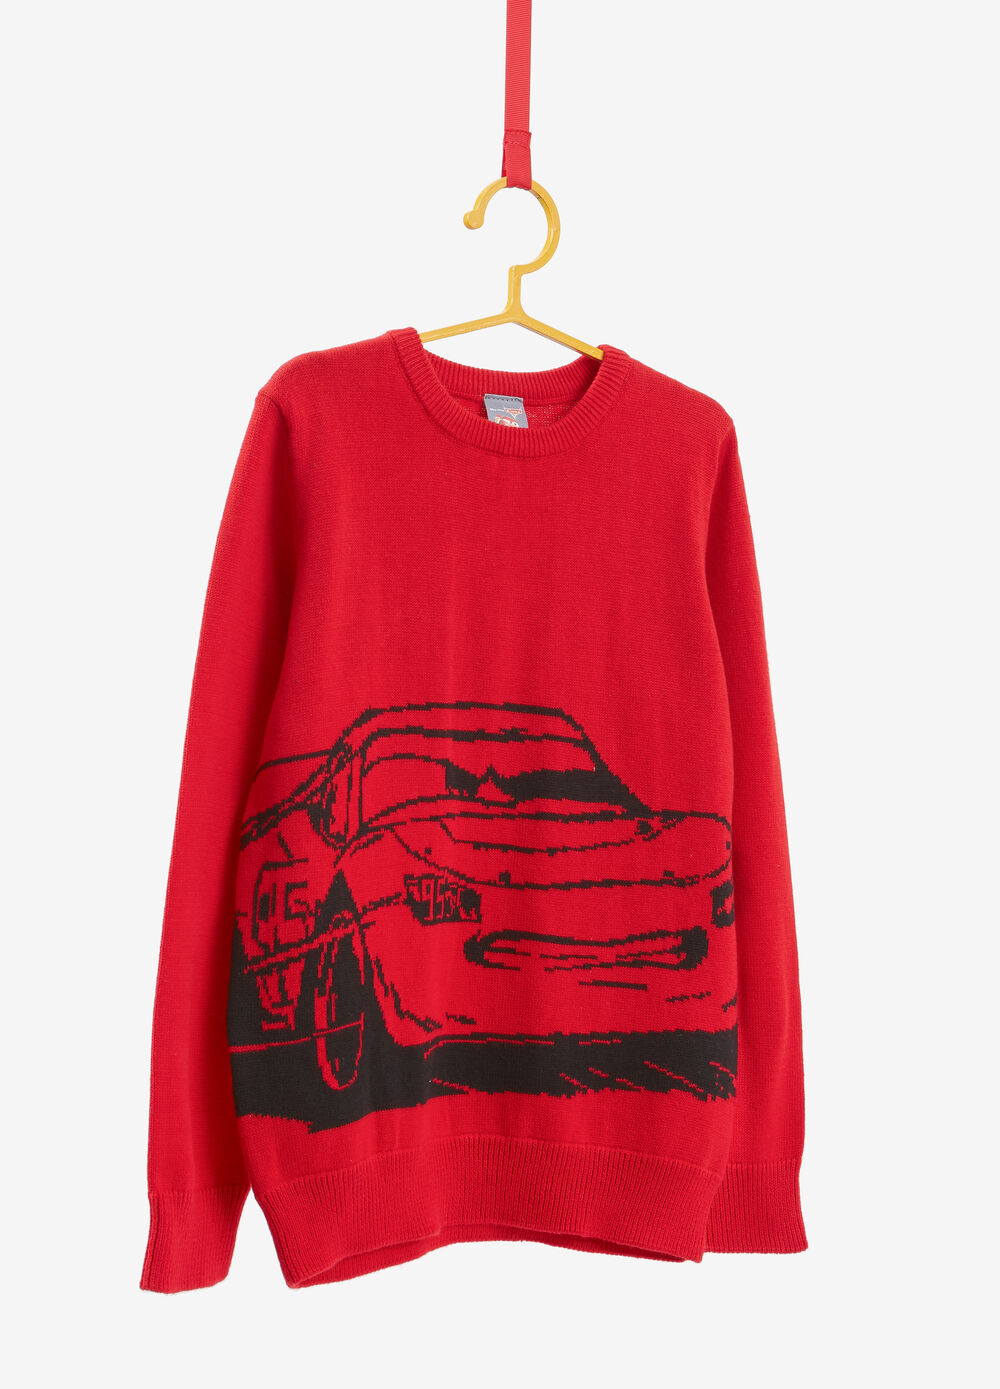 100% cotton pullover with Cars embroidery